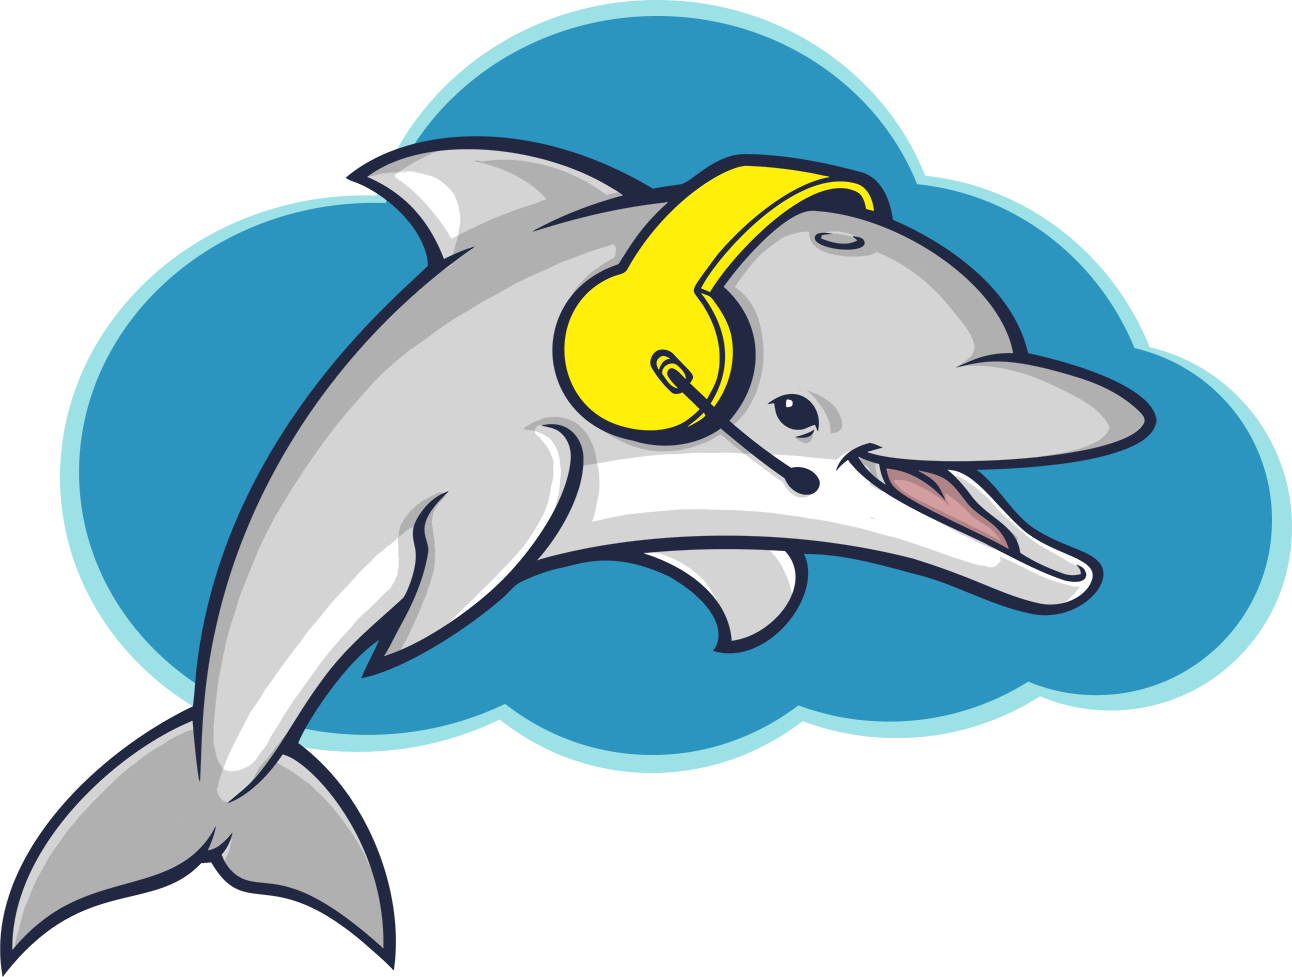 Crm dialer for telesales. Dolphin clipart living thing